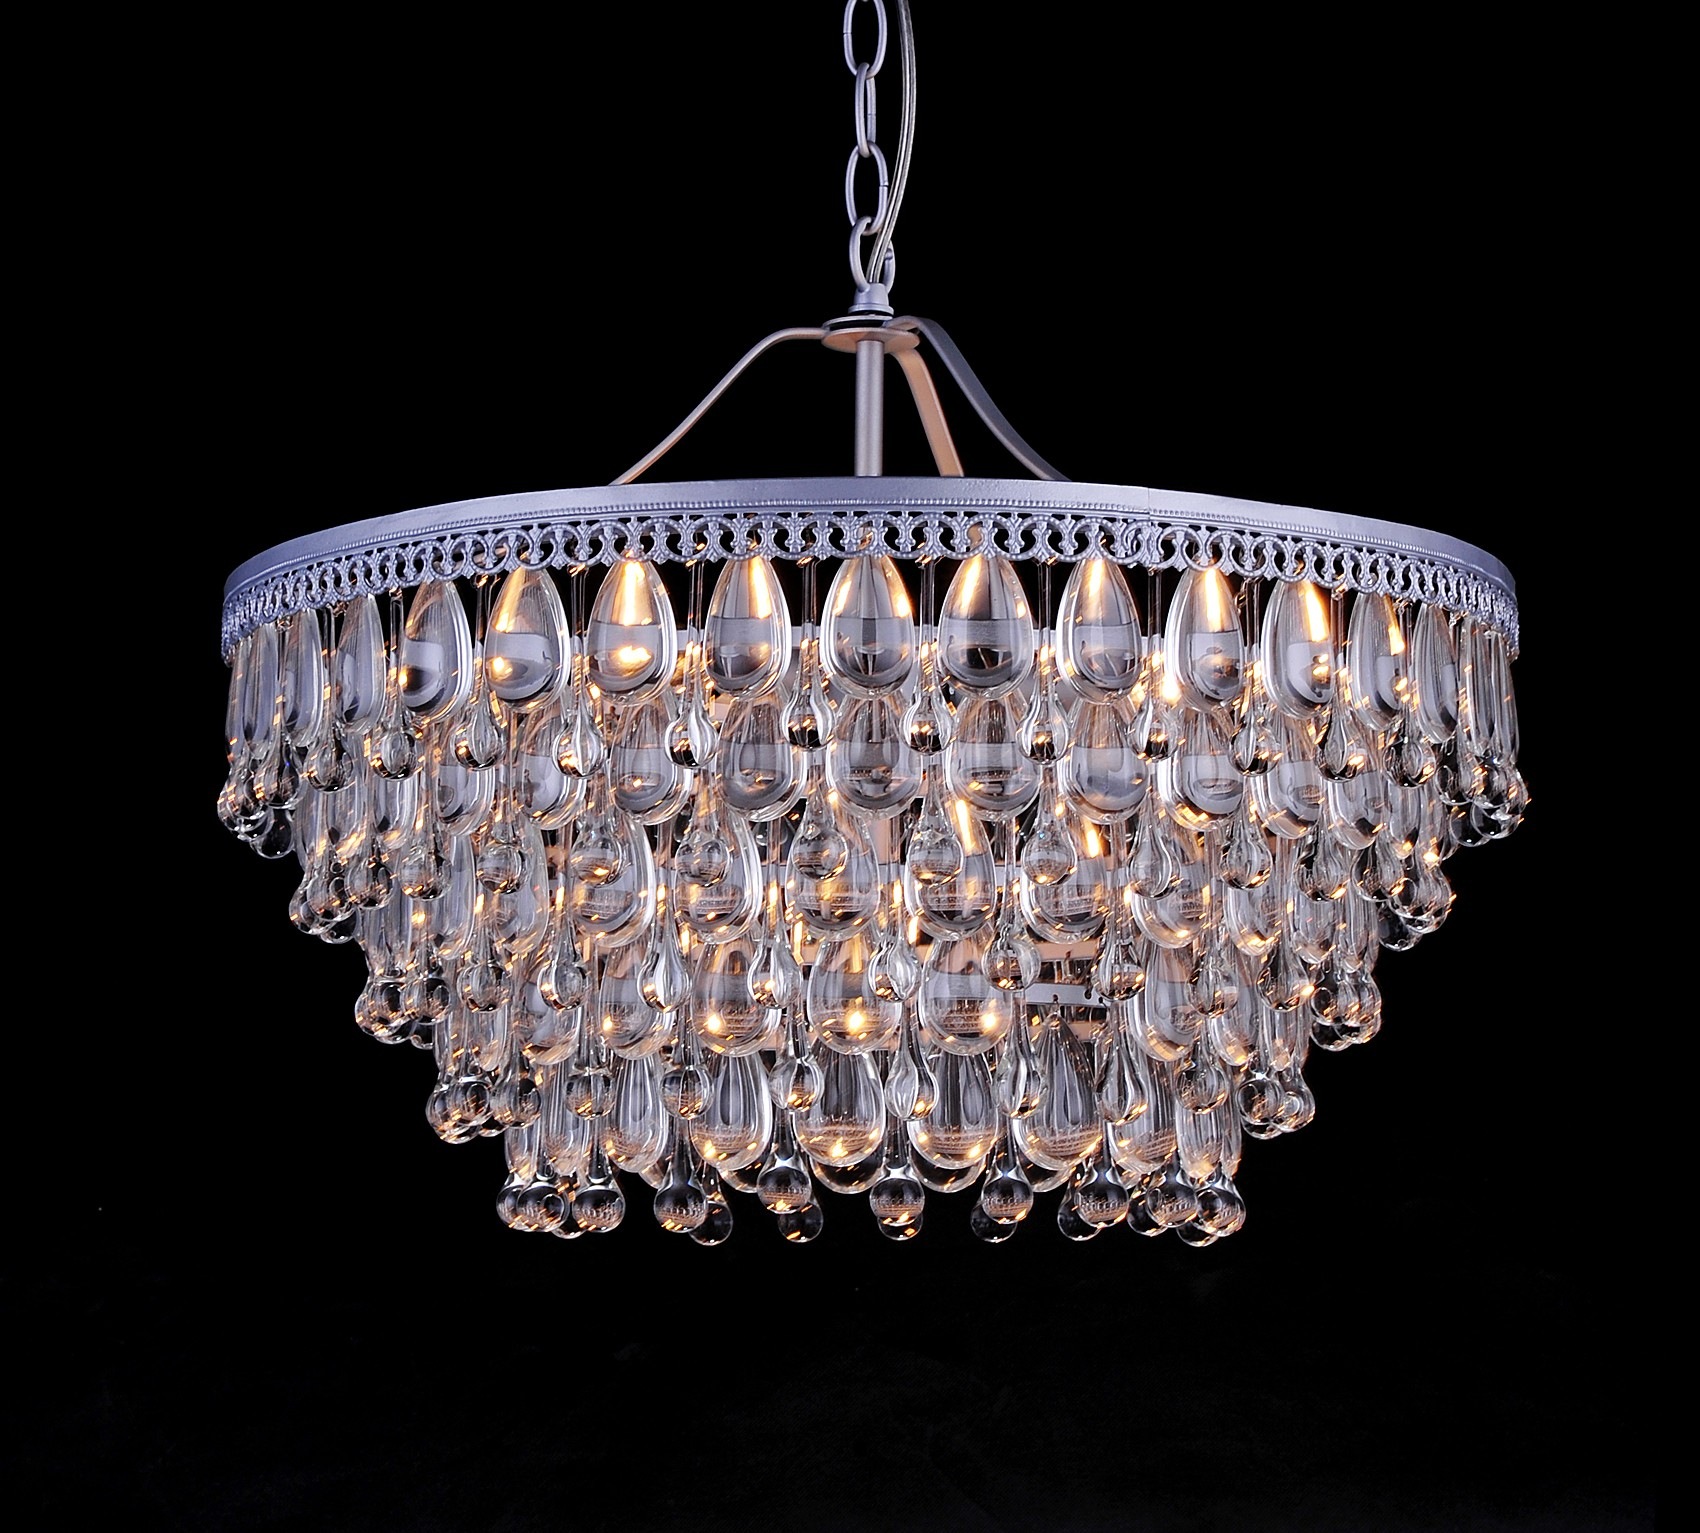 Kassandra Light Sparkle Crystal Teardrop Bead Matte Silver - Chandelier crystals teardrop